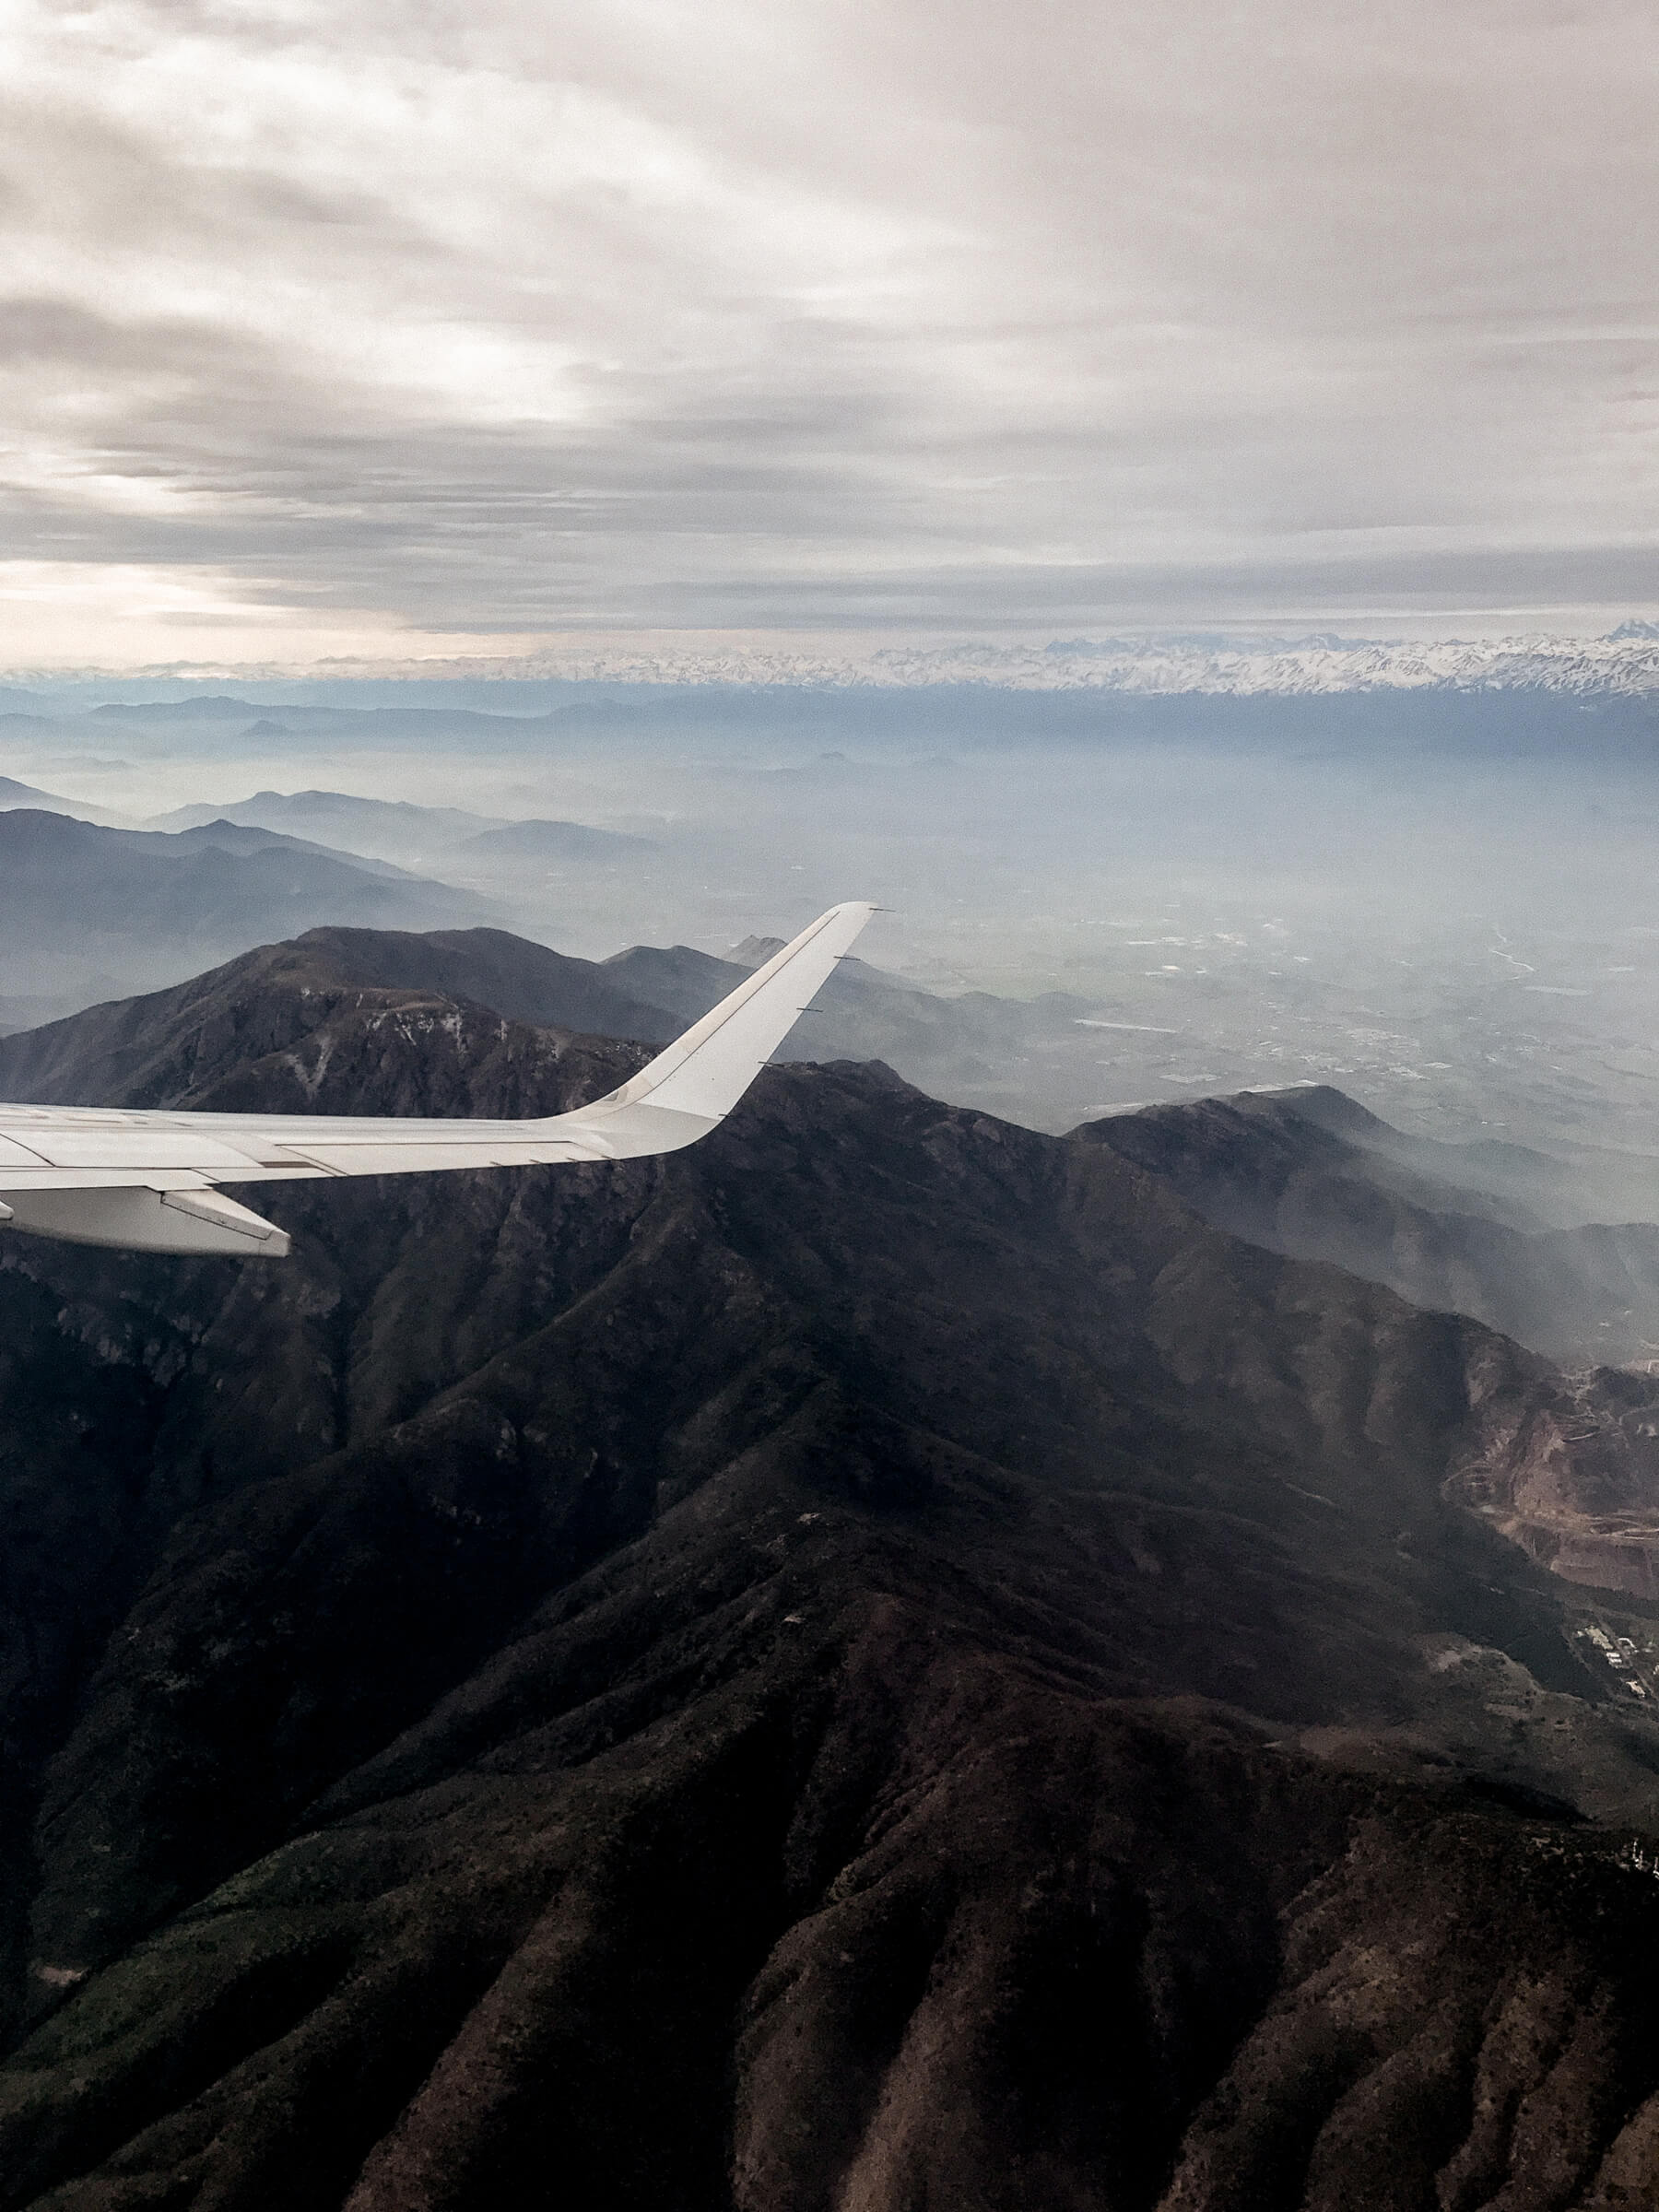 The wing of a plane whilst flying above dark, rugged mountains